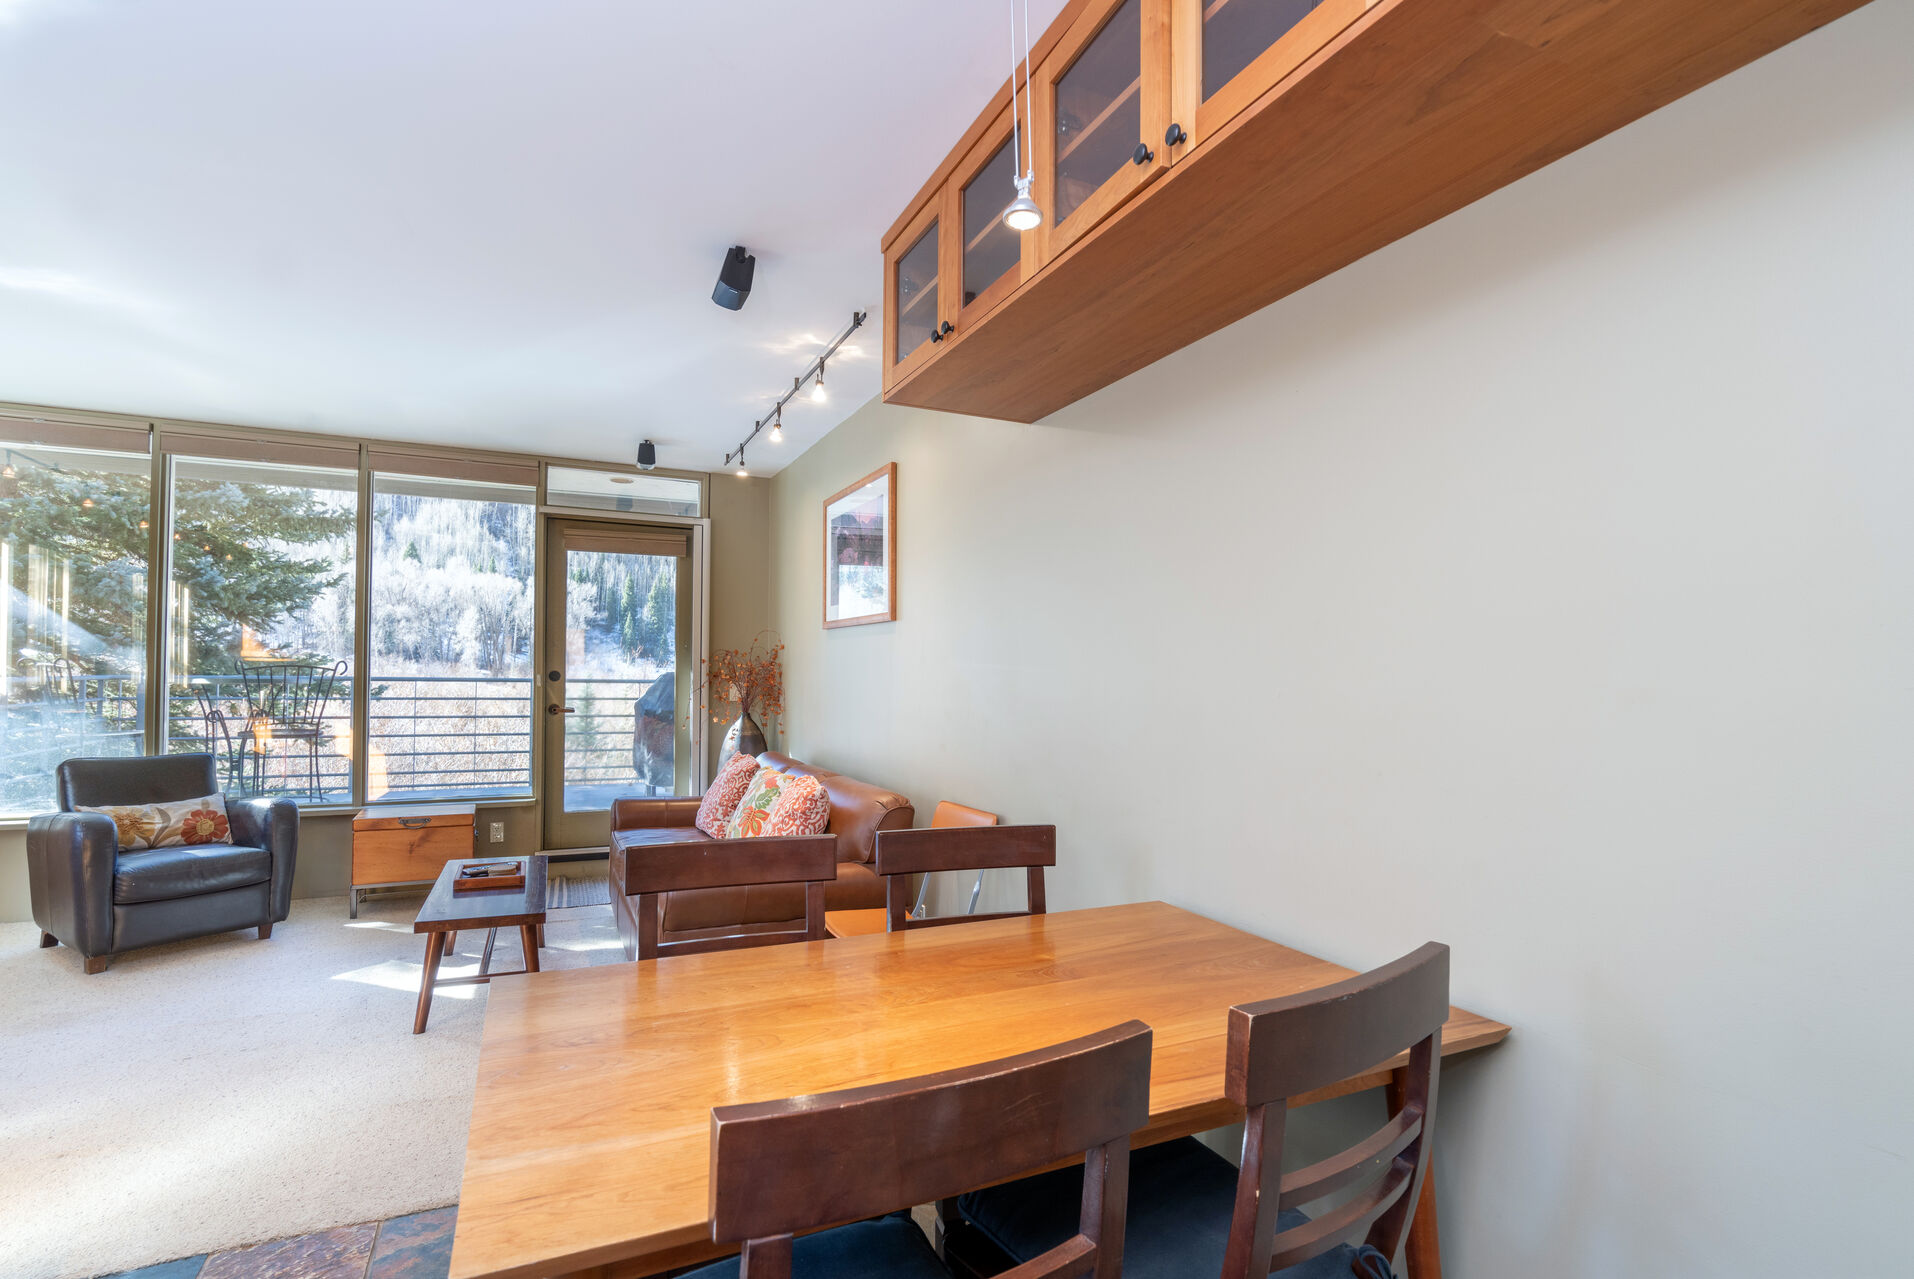 Dining area with a wooden table and seating for 4